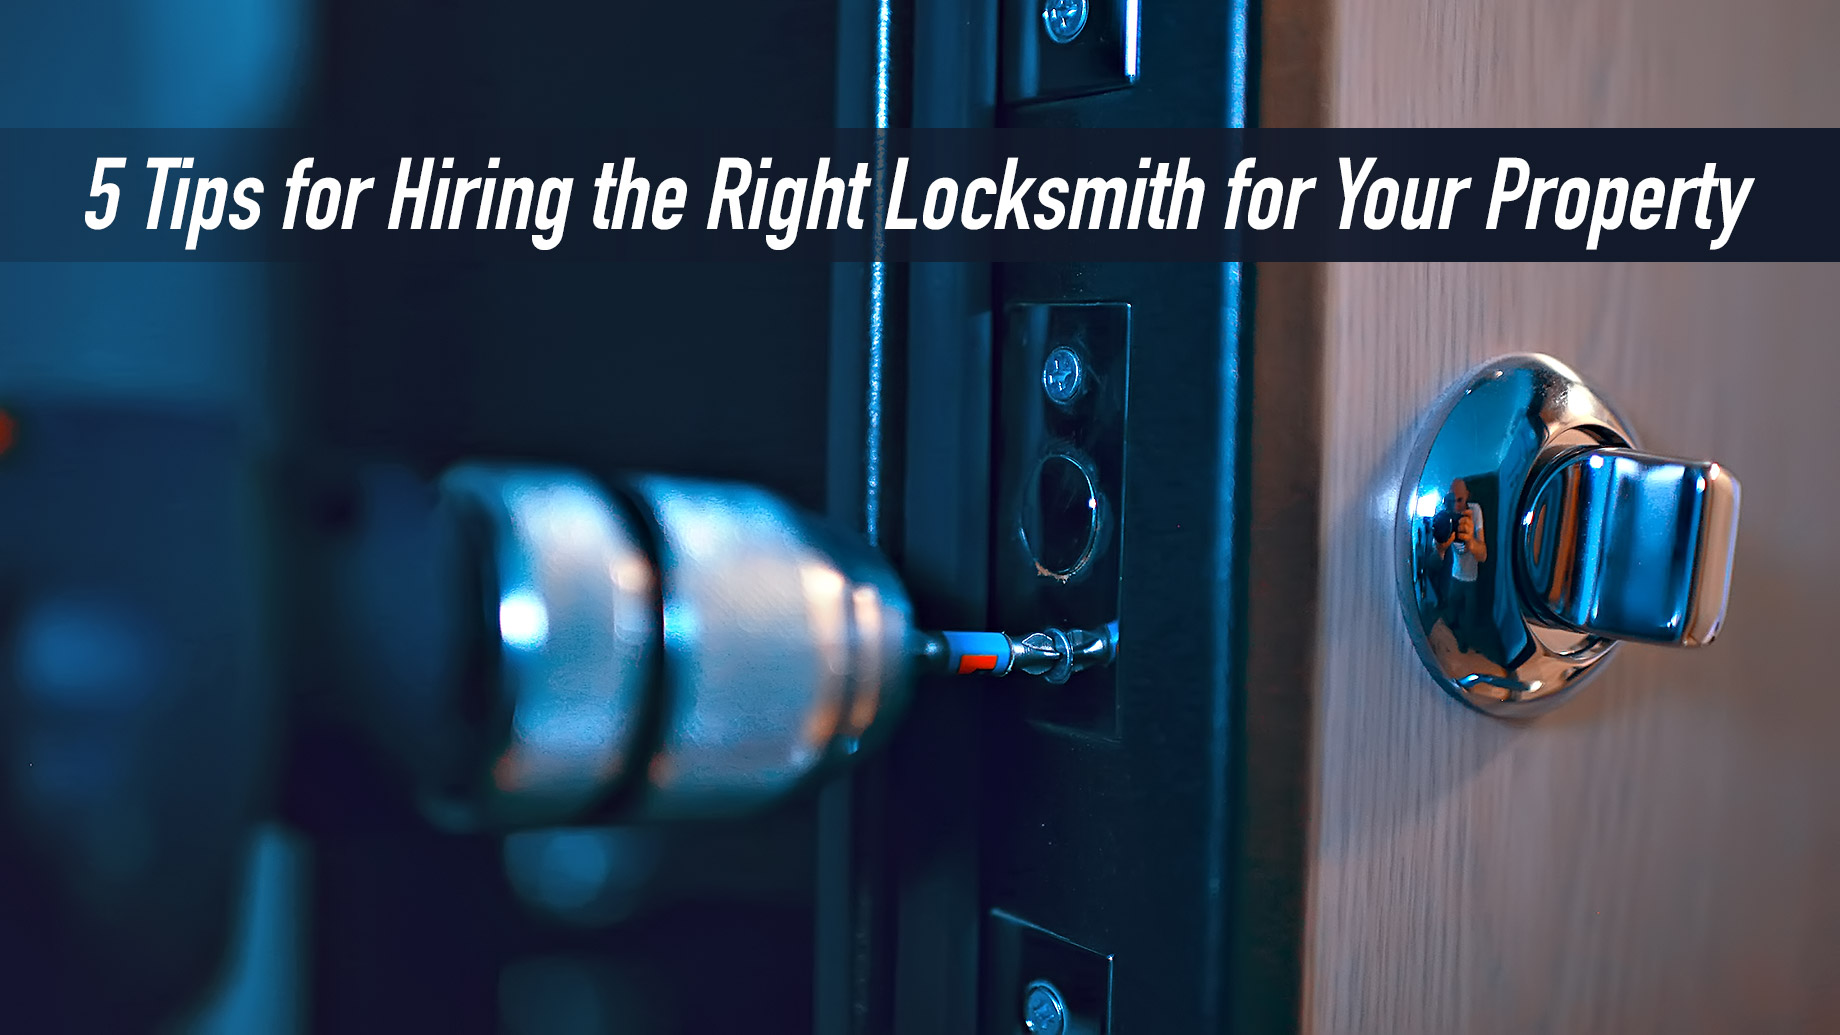 Five Tips for Hiring the Right Locksmith for Your Property